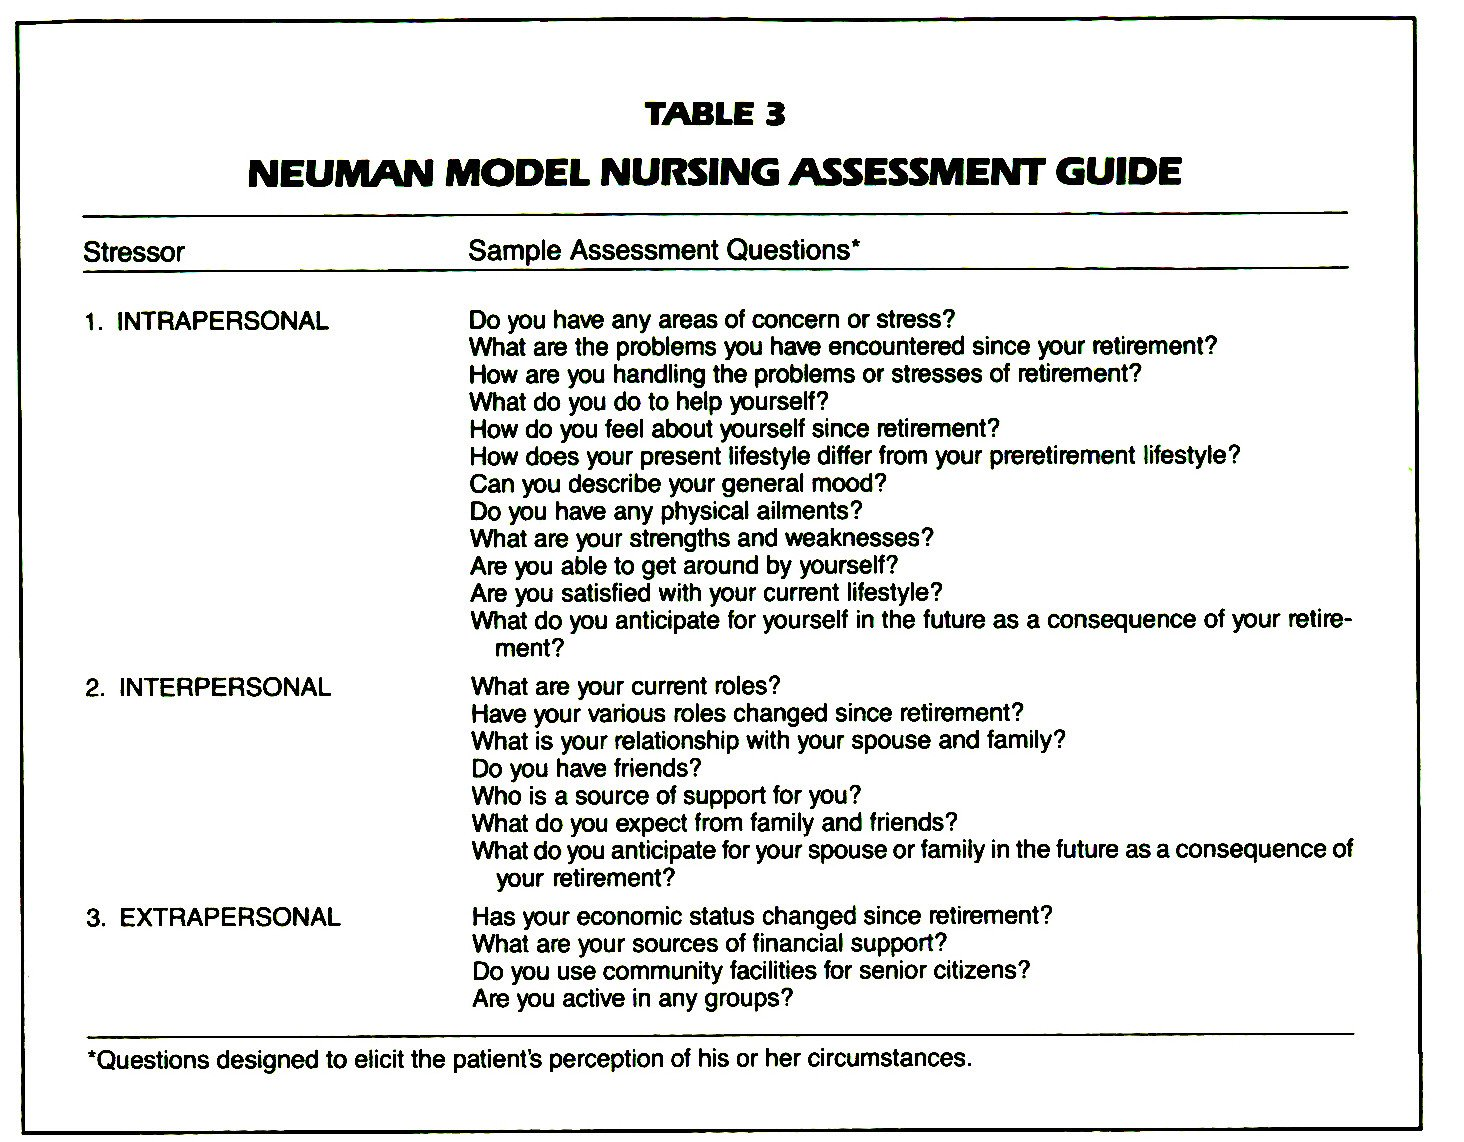 TABLES 3NEUMAN MODEL NURSING ASSESSMENT GUIDE